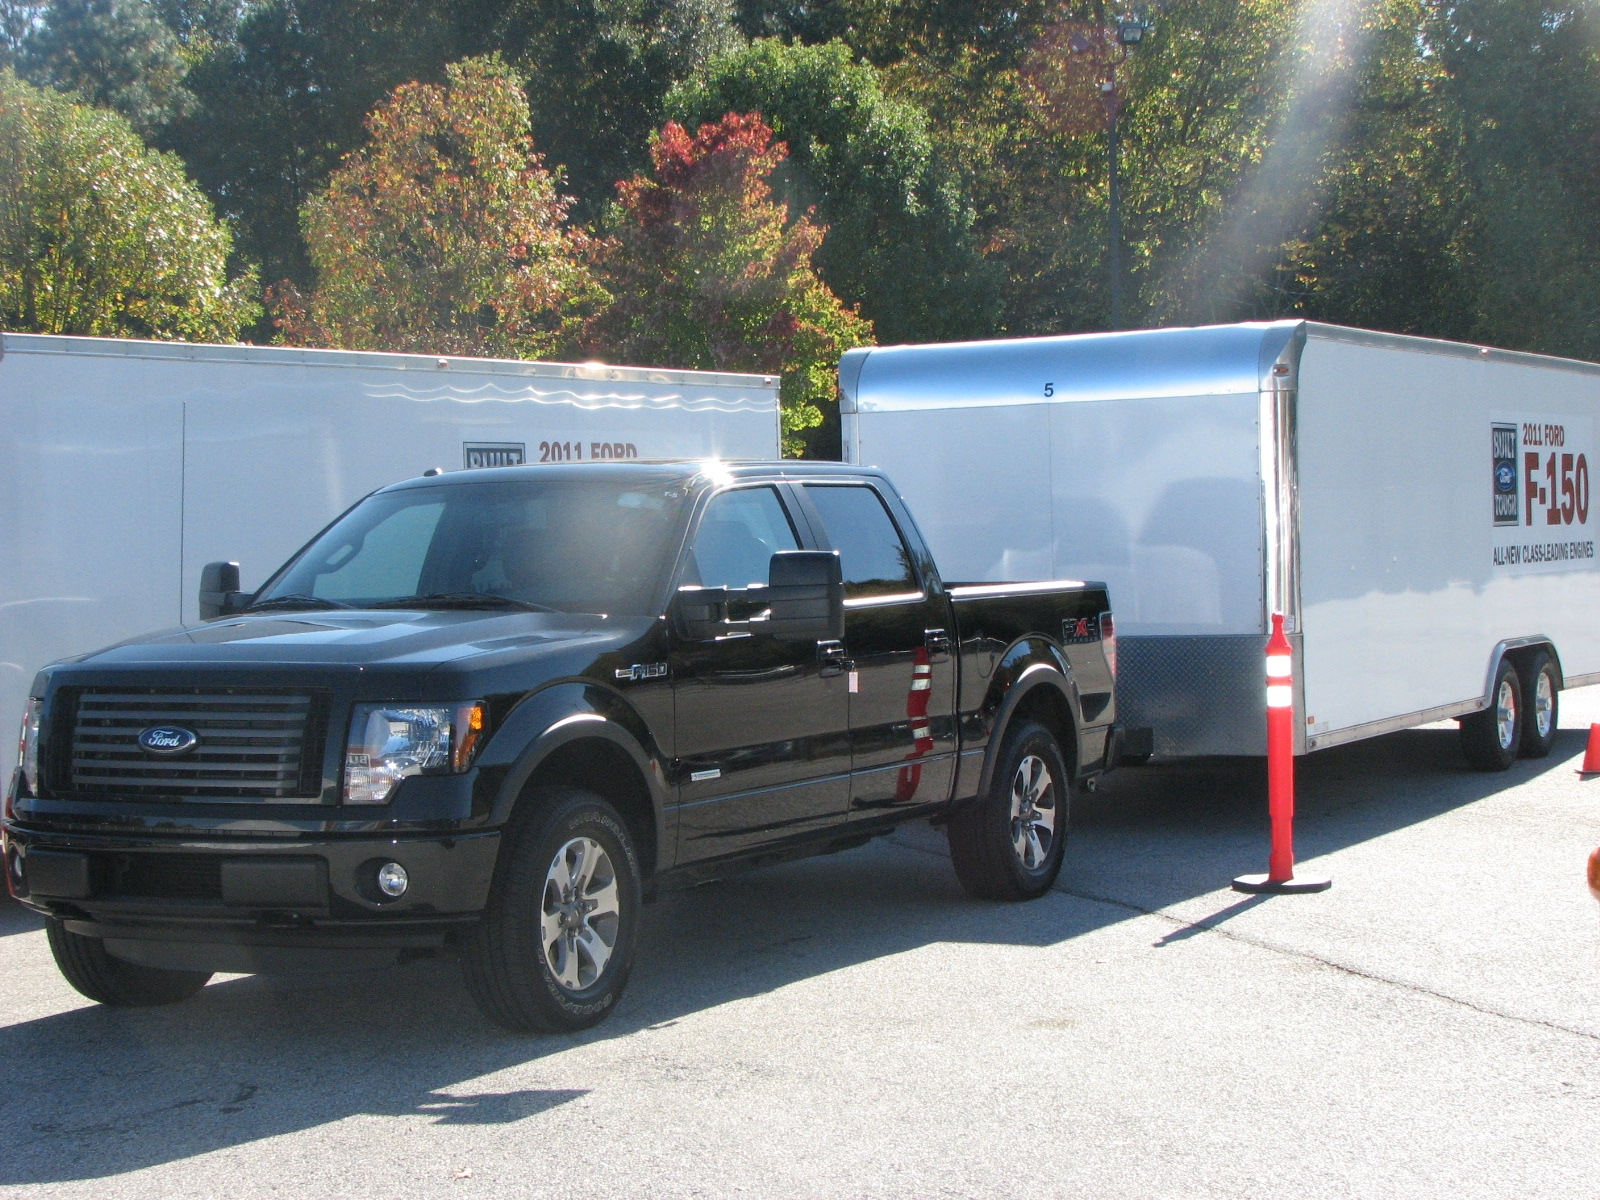 Ford Pushes New 6 Cylinder Truck Engines Along With Consumer Test Drives